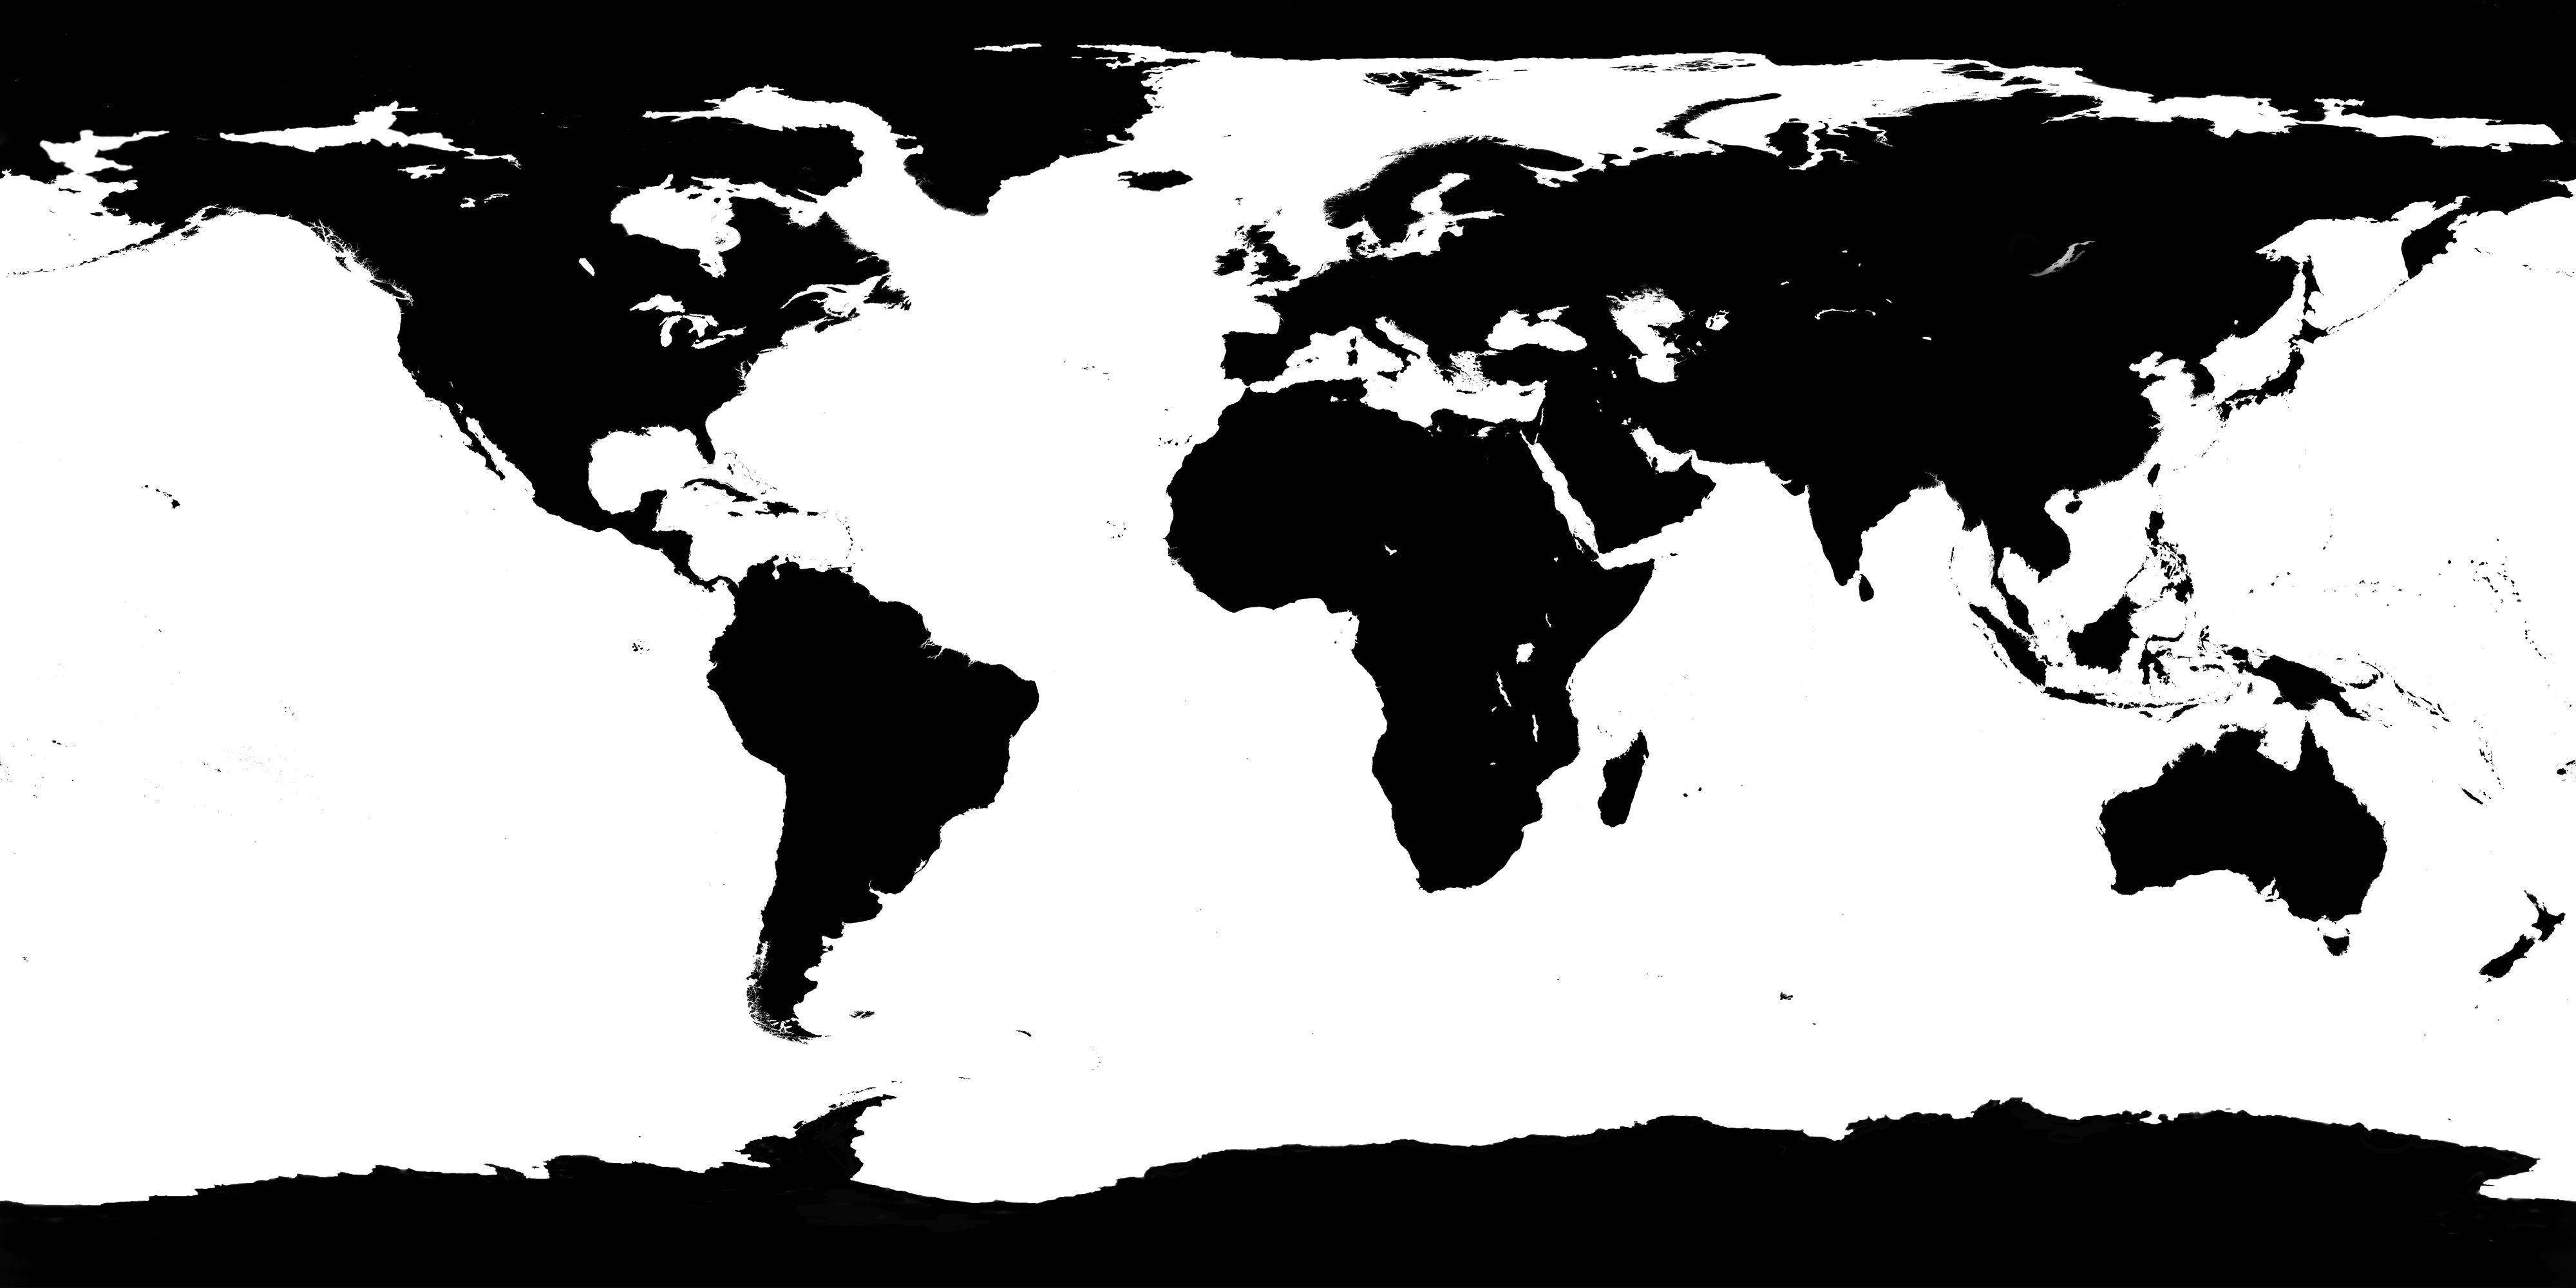 4000x2000 World Map Black And White Vector Save Free Favs